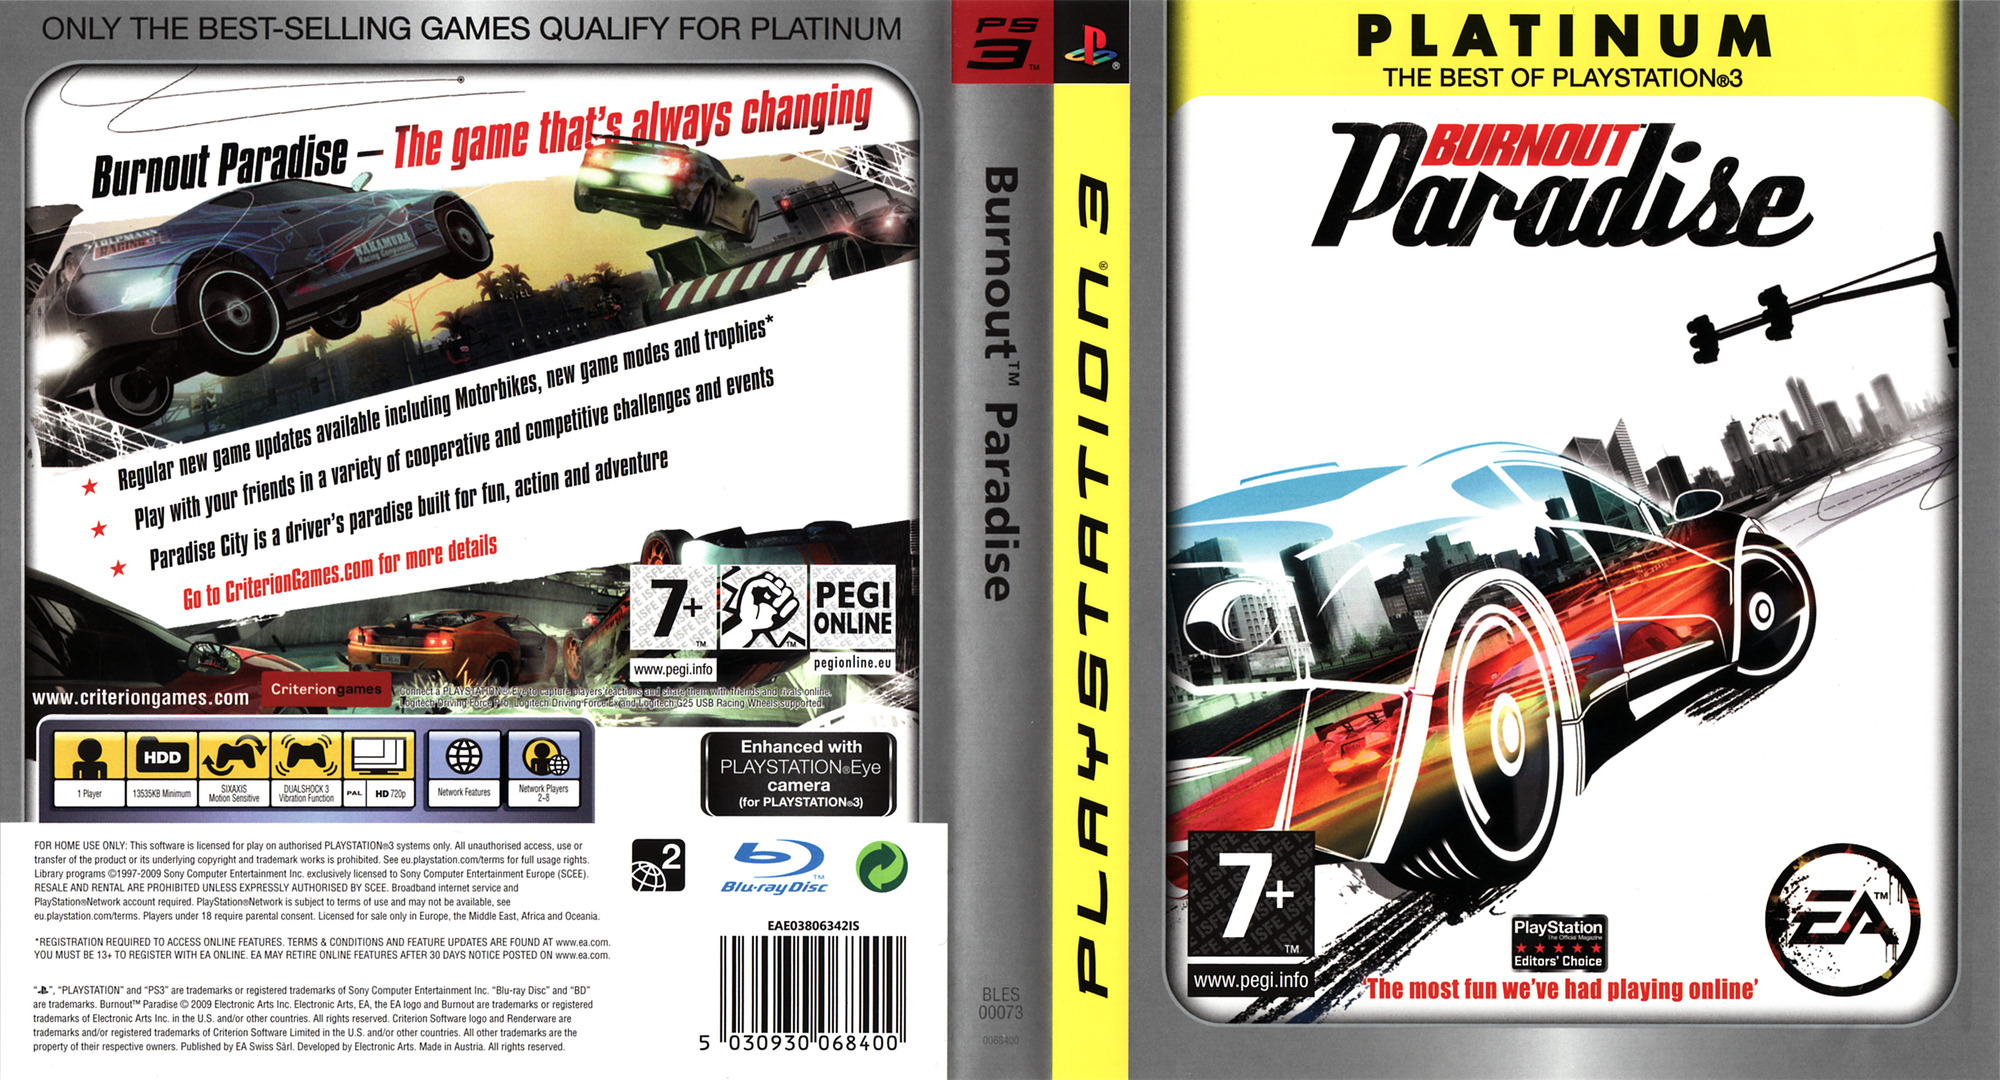 Burnout Paradise PS3 coverfullHQB (BLES00073)